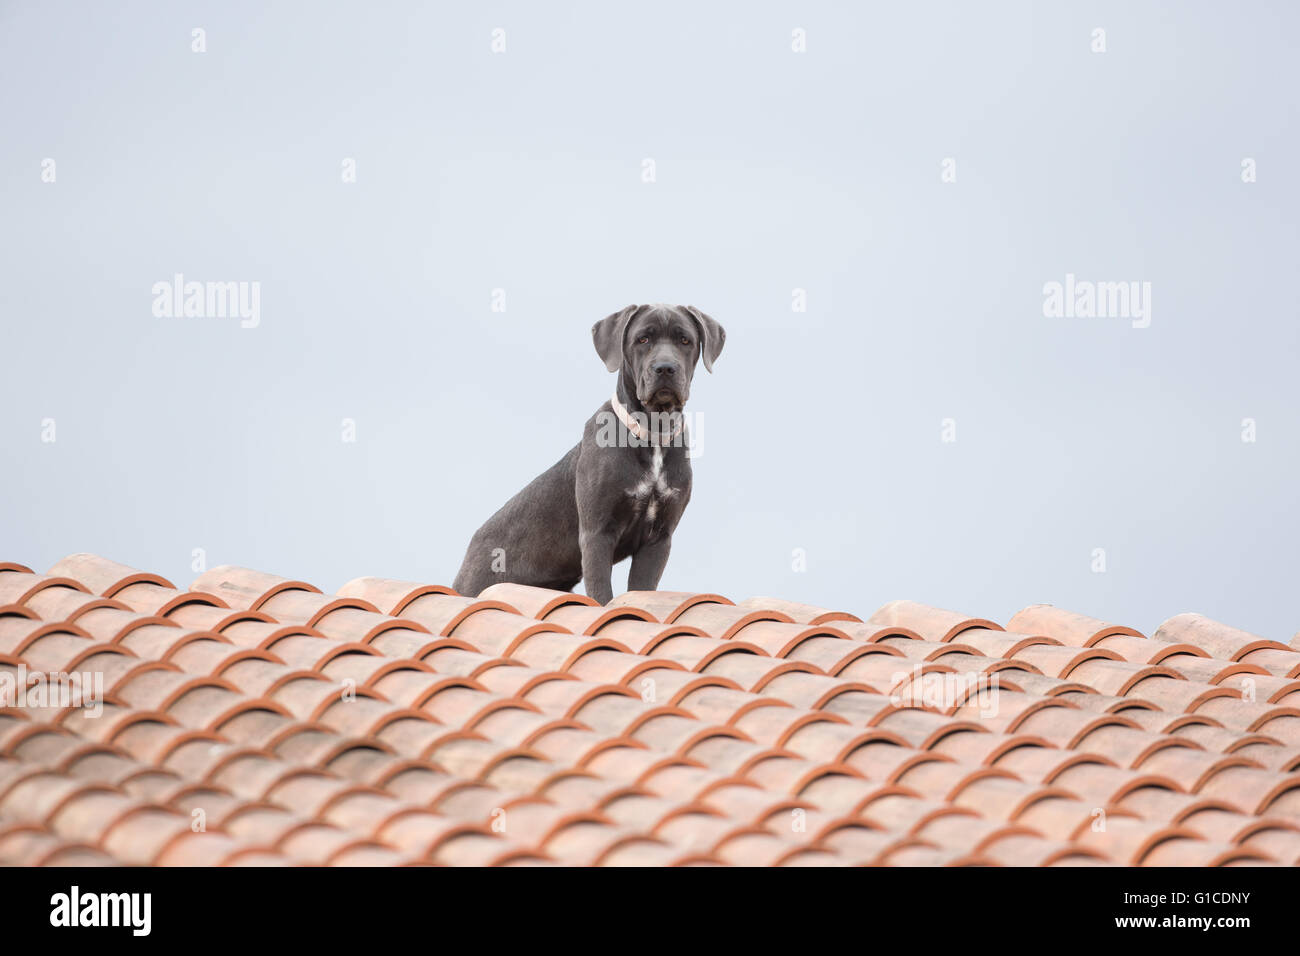 Dog on a roof - Stock Image